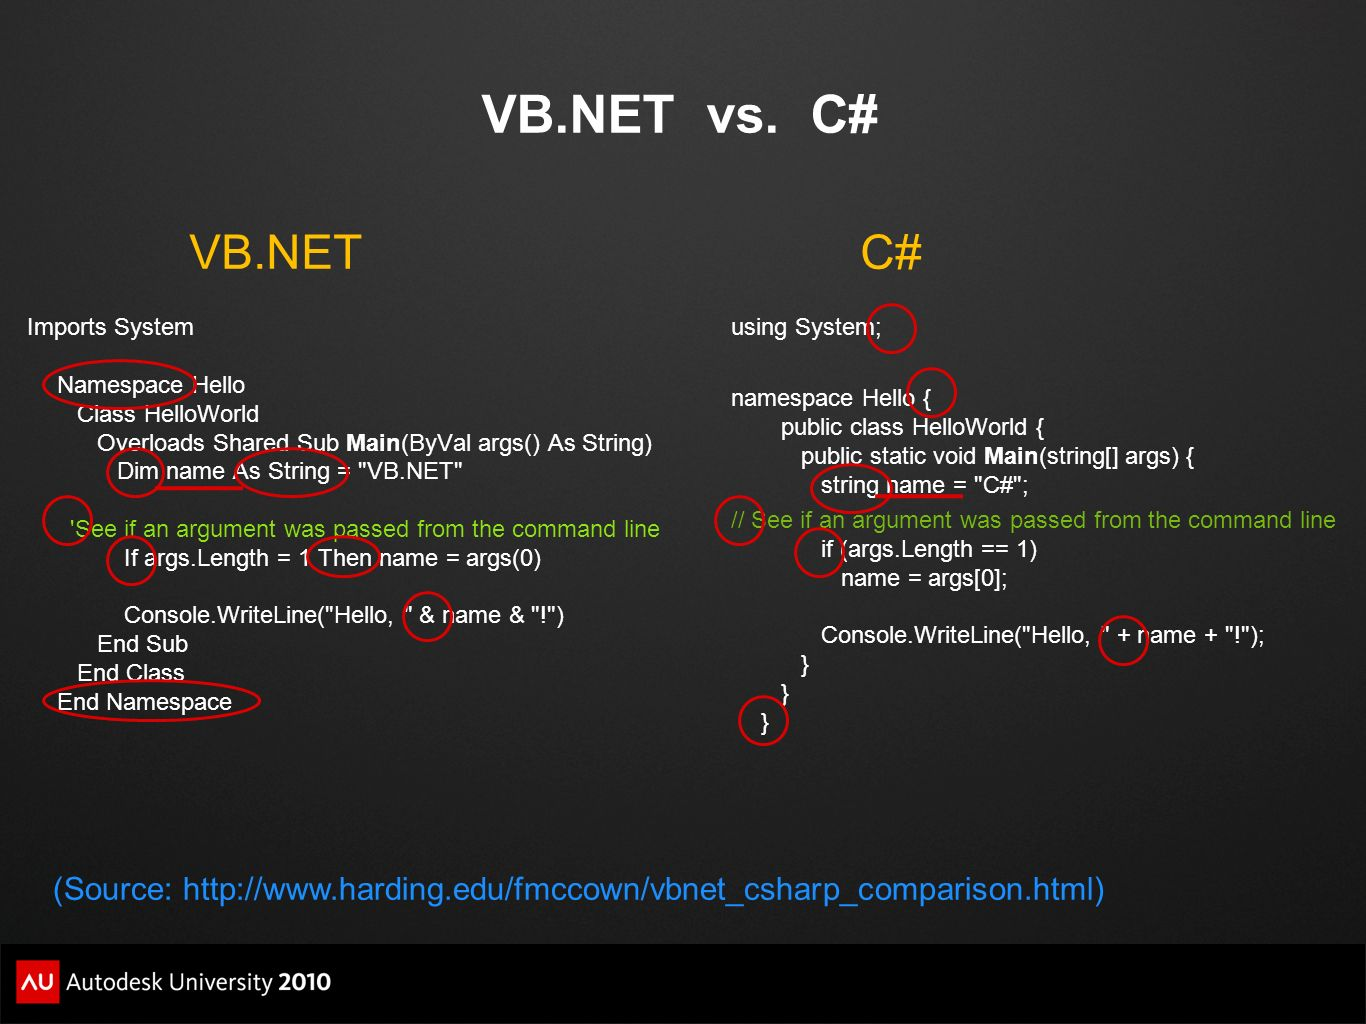 VB.NET vs. C# VB.NET. C#